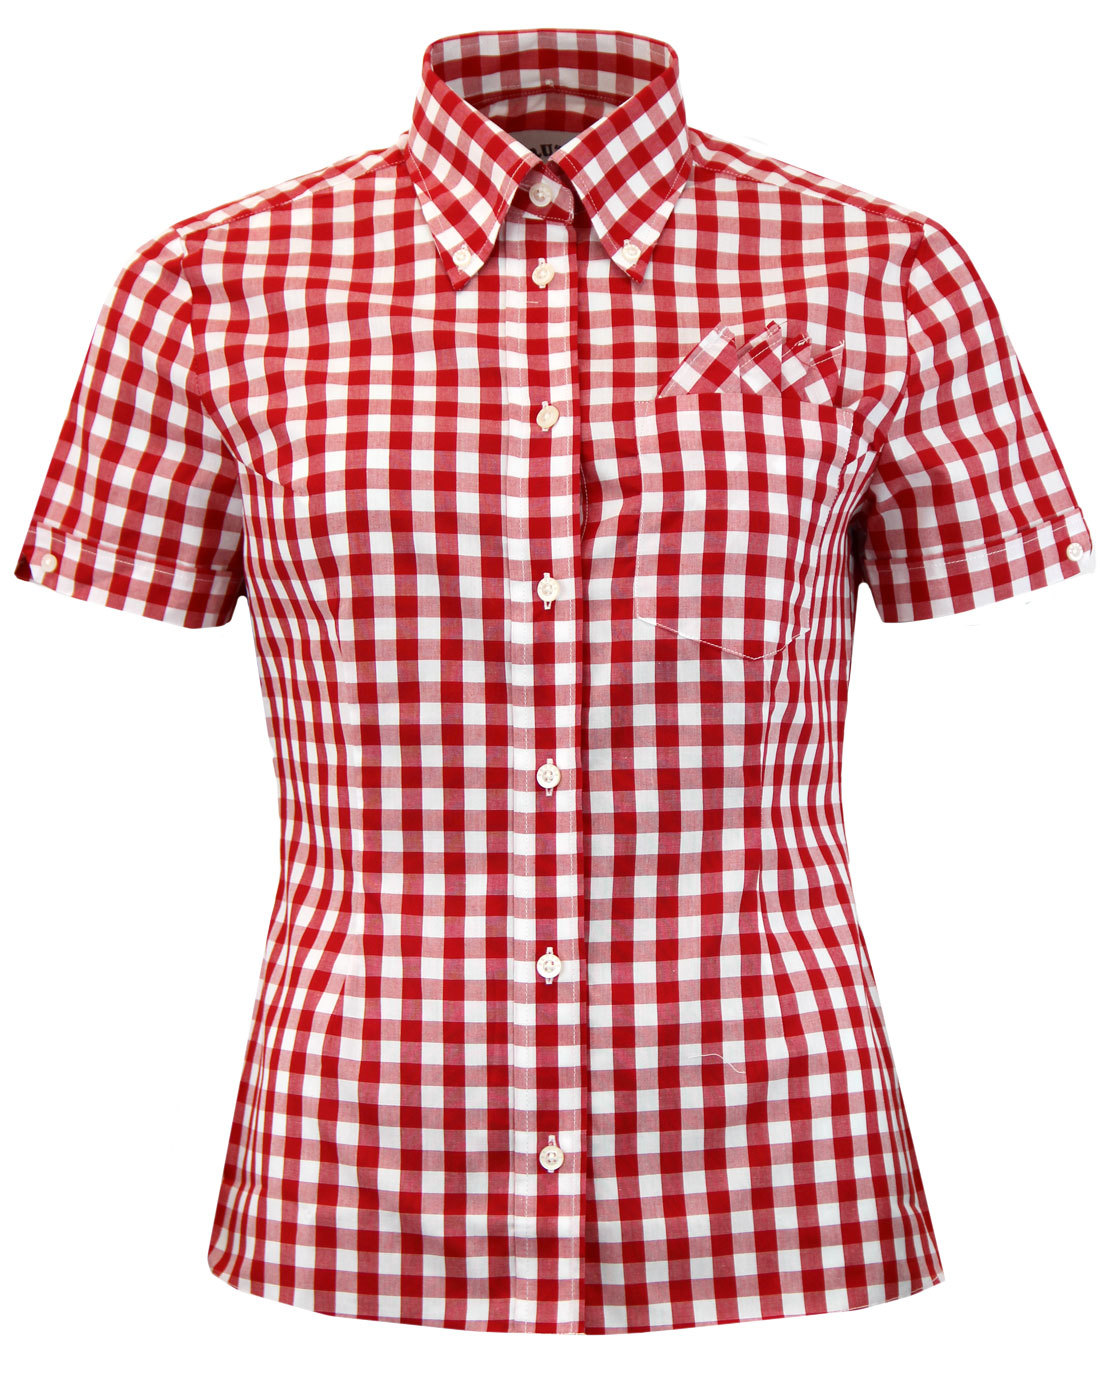 Womens Red Gingham Check Shirt Toffee Art